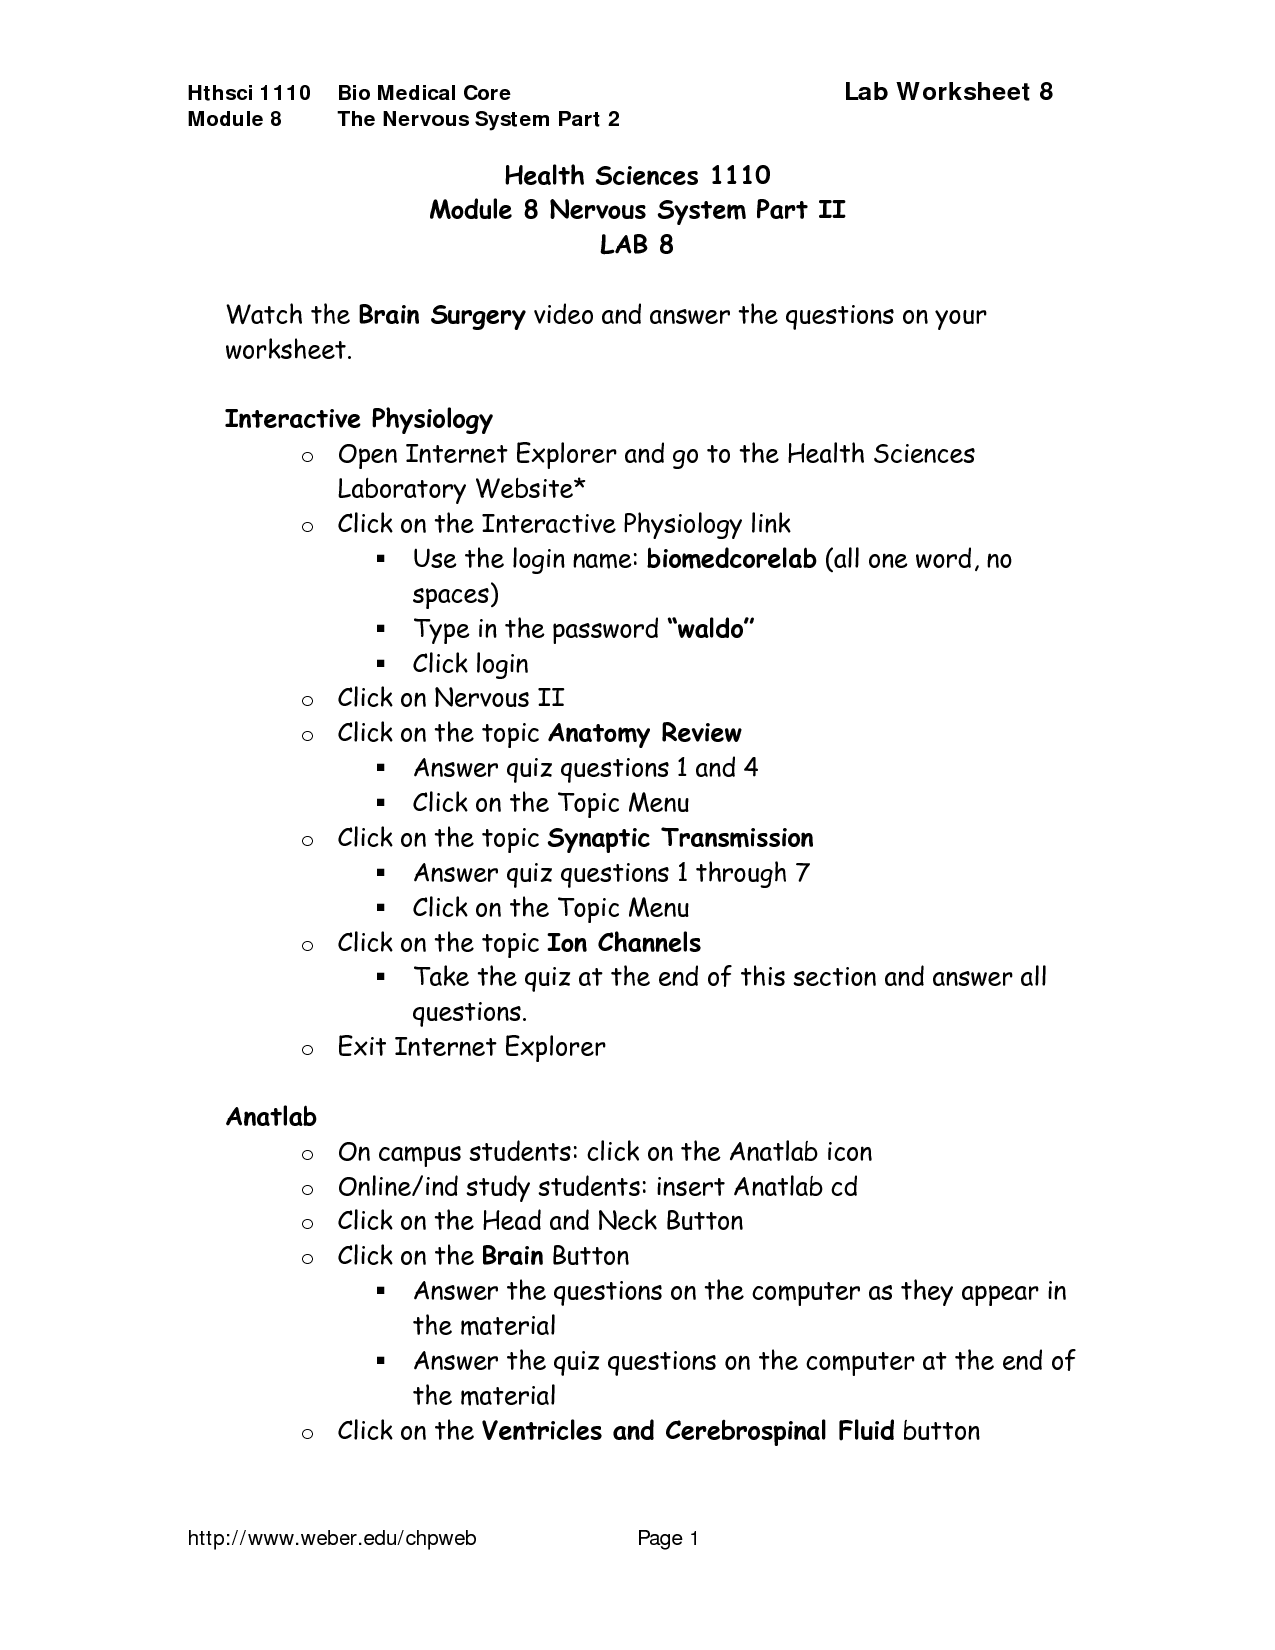 Nervous System Coloring Worksheet Answers